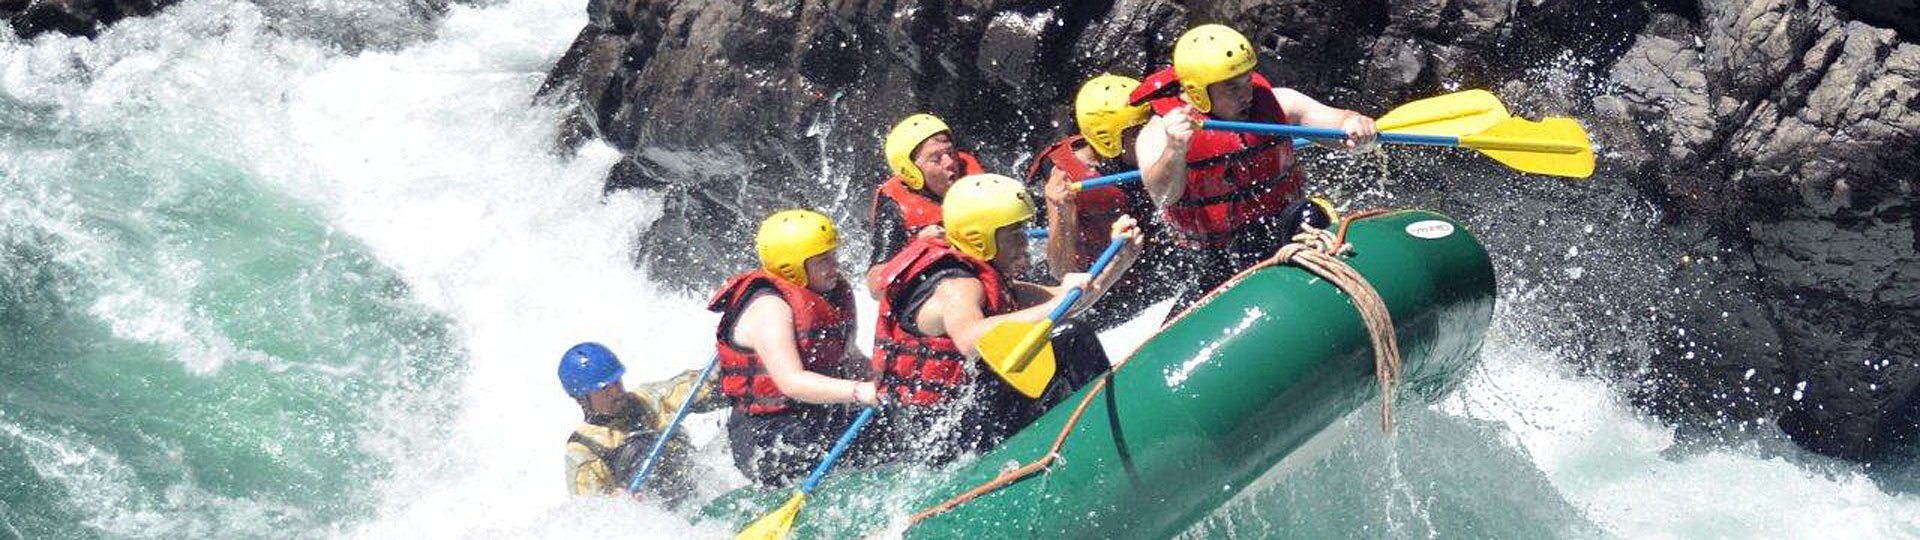 Extremo Sur - Rafting